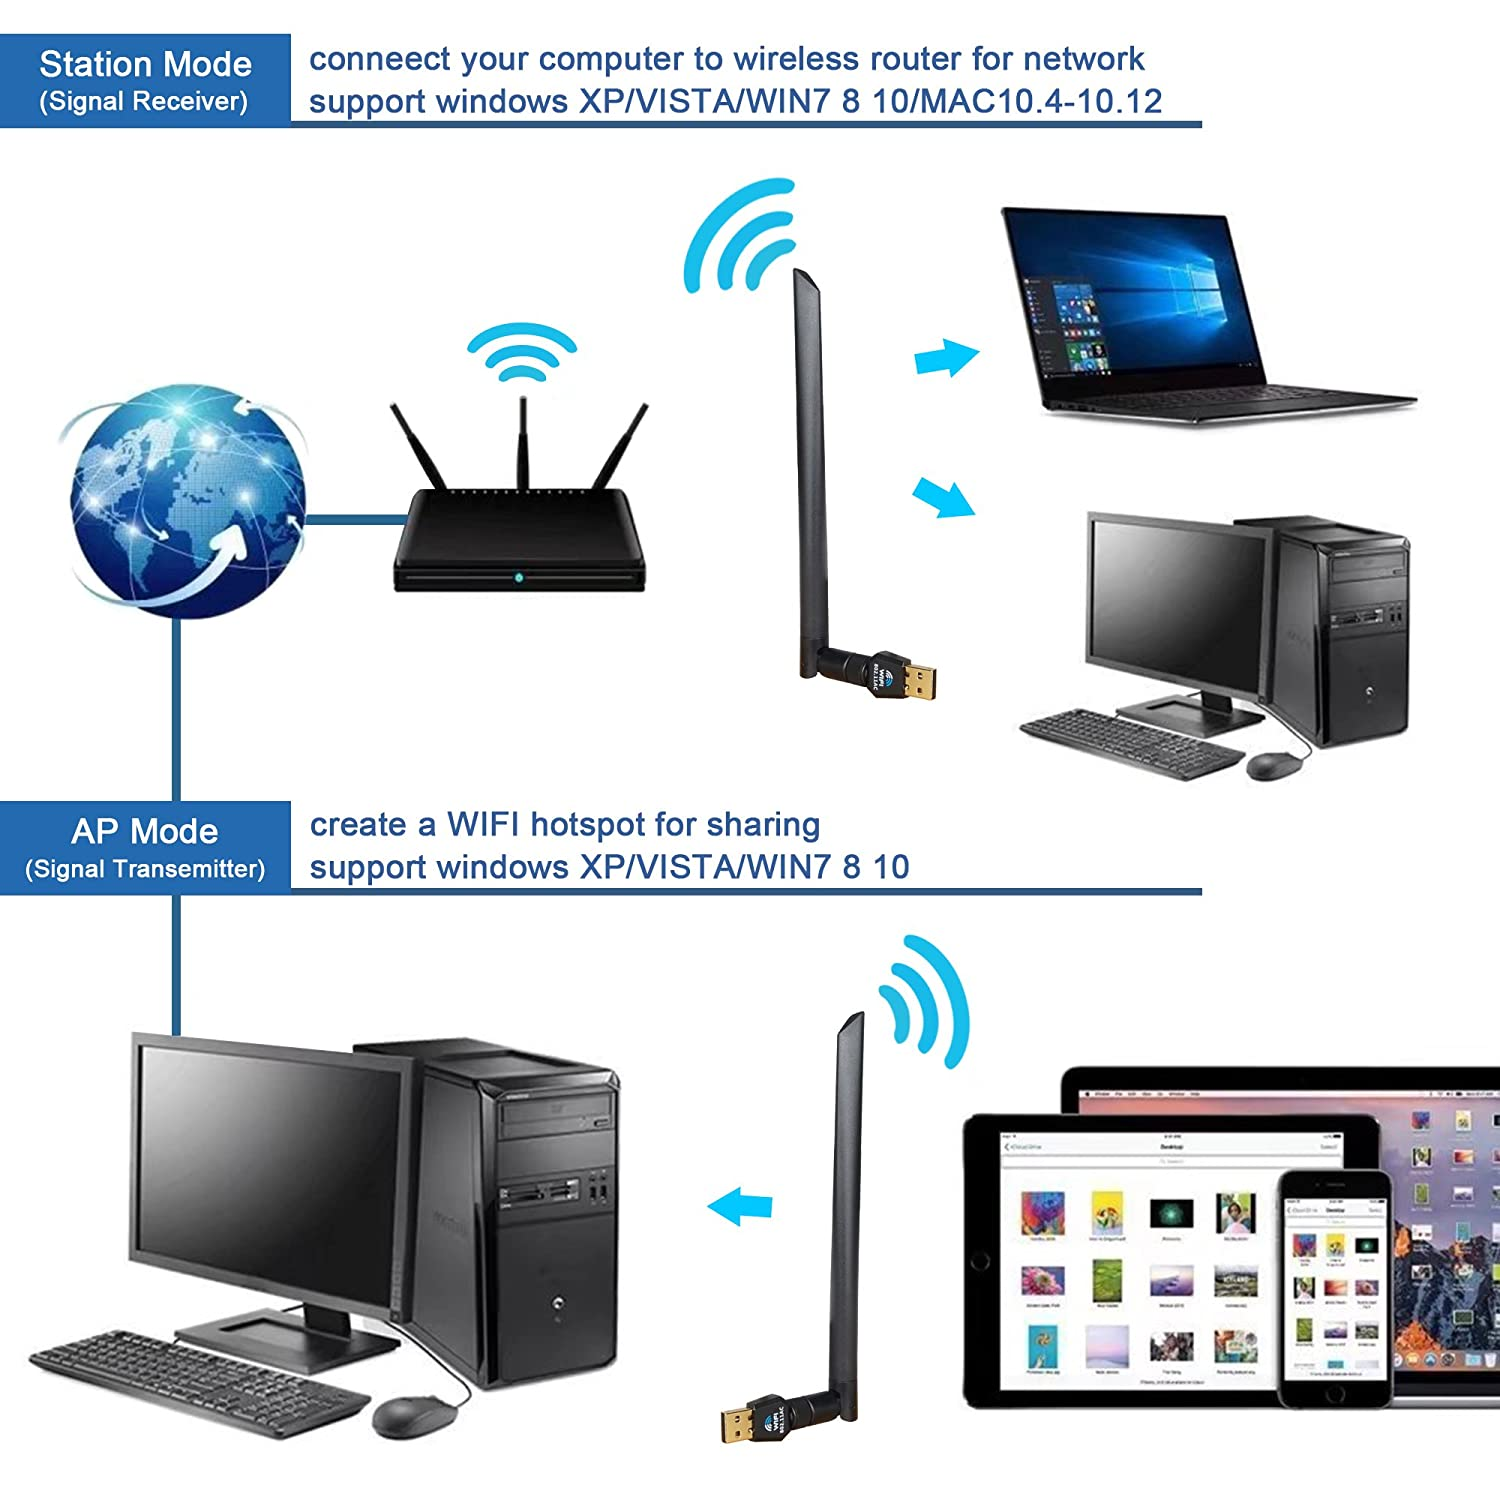 USB Wifi Adapter Dual Band 600Mbps Wireless Network Adapter with 5dBi Antenna for PC//Desktop pc//Laptop//Table Supports Windows 10//8//7//Vista//XP//2000 Vipfan Wifi Dongle Mac OS X 10.4-10.12